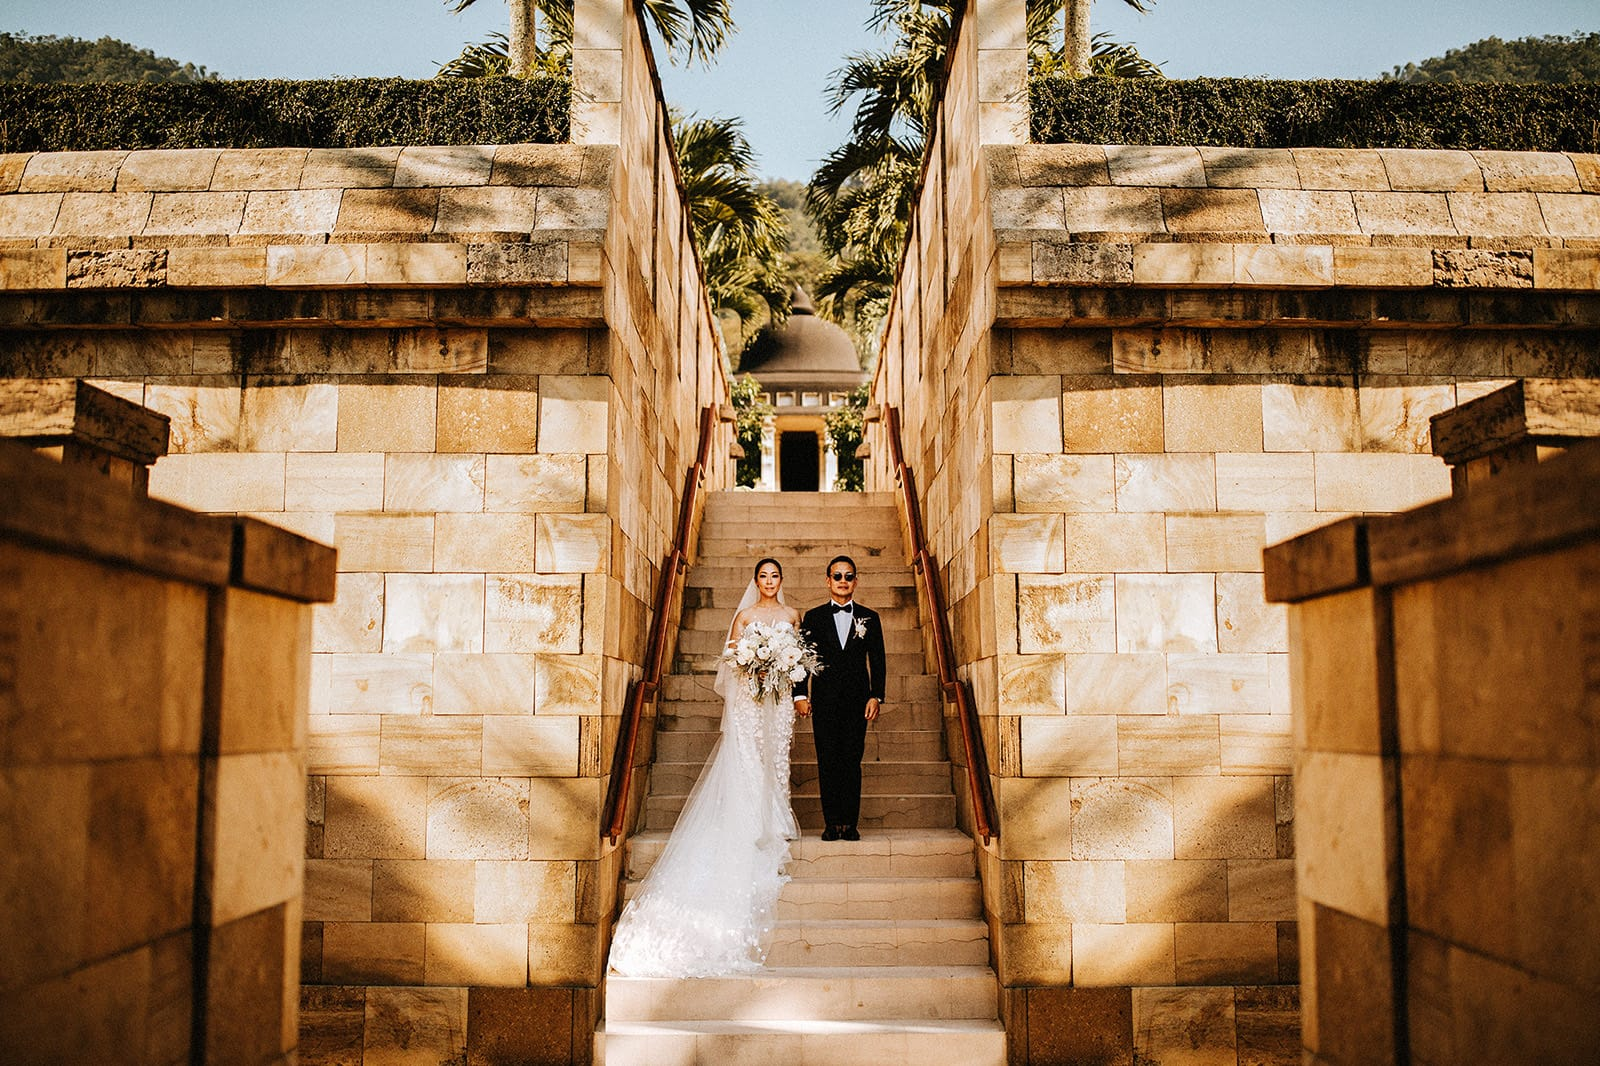 A wedding couple is standing on stairs and holding hands with an old building behind them.